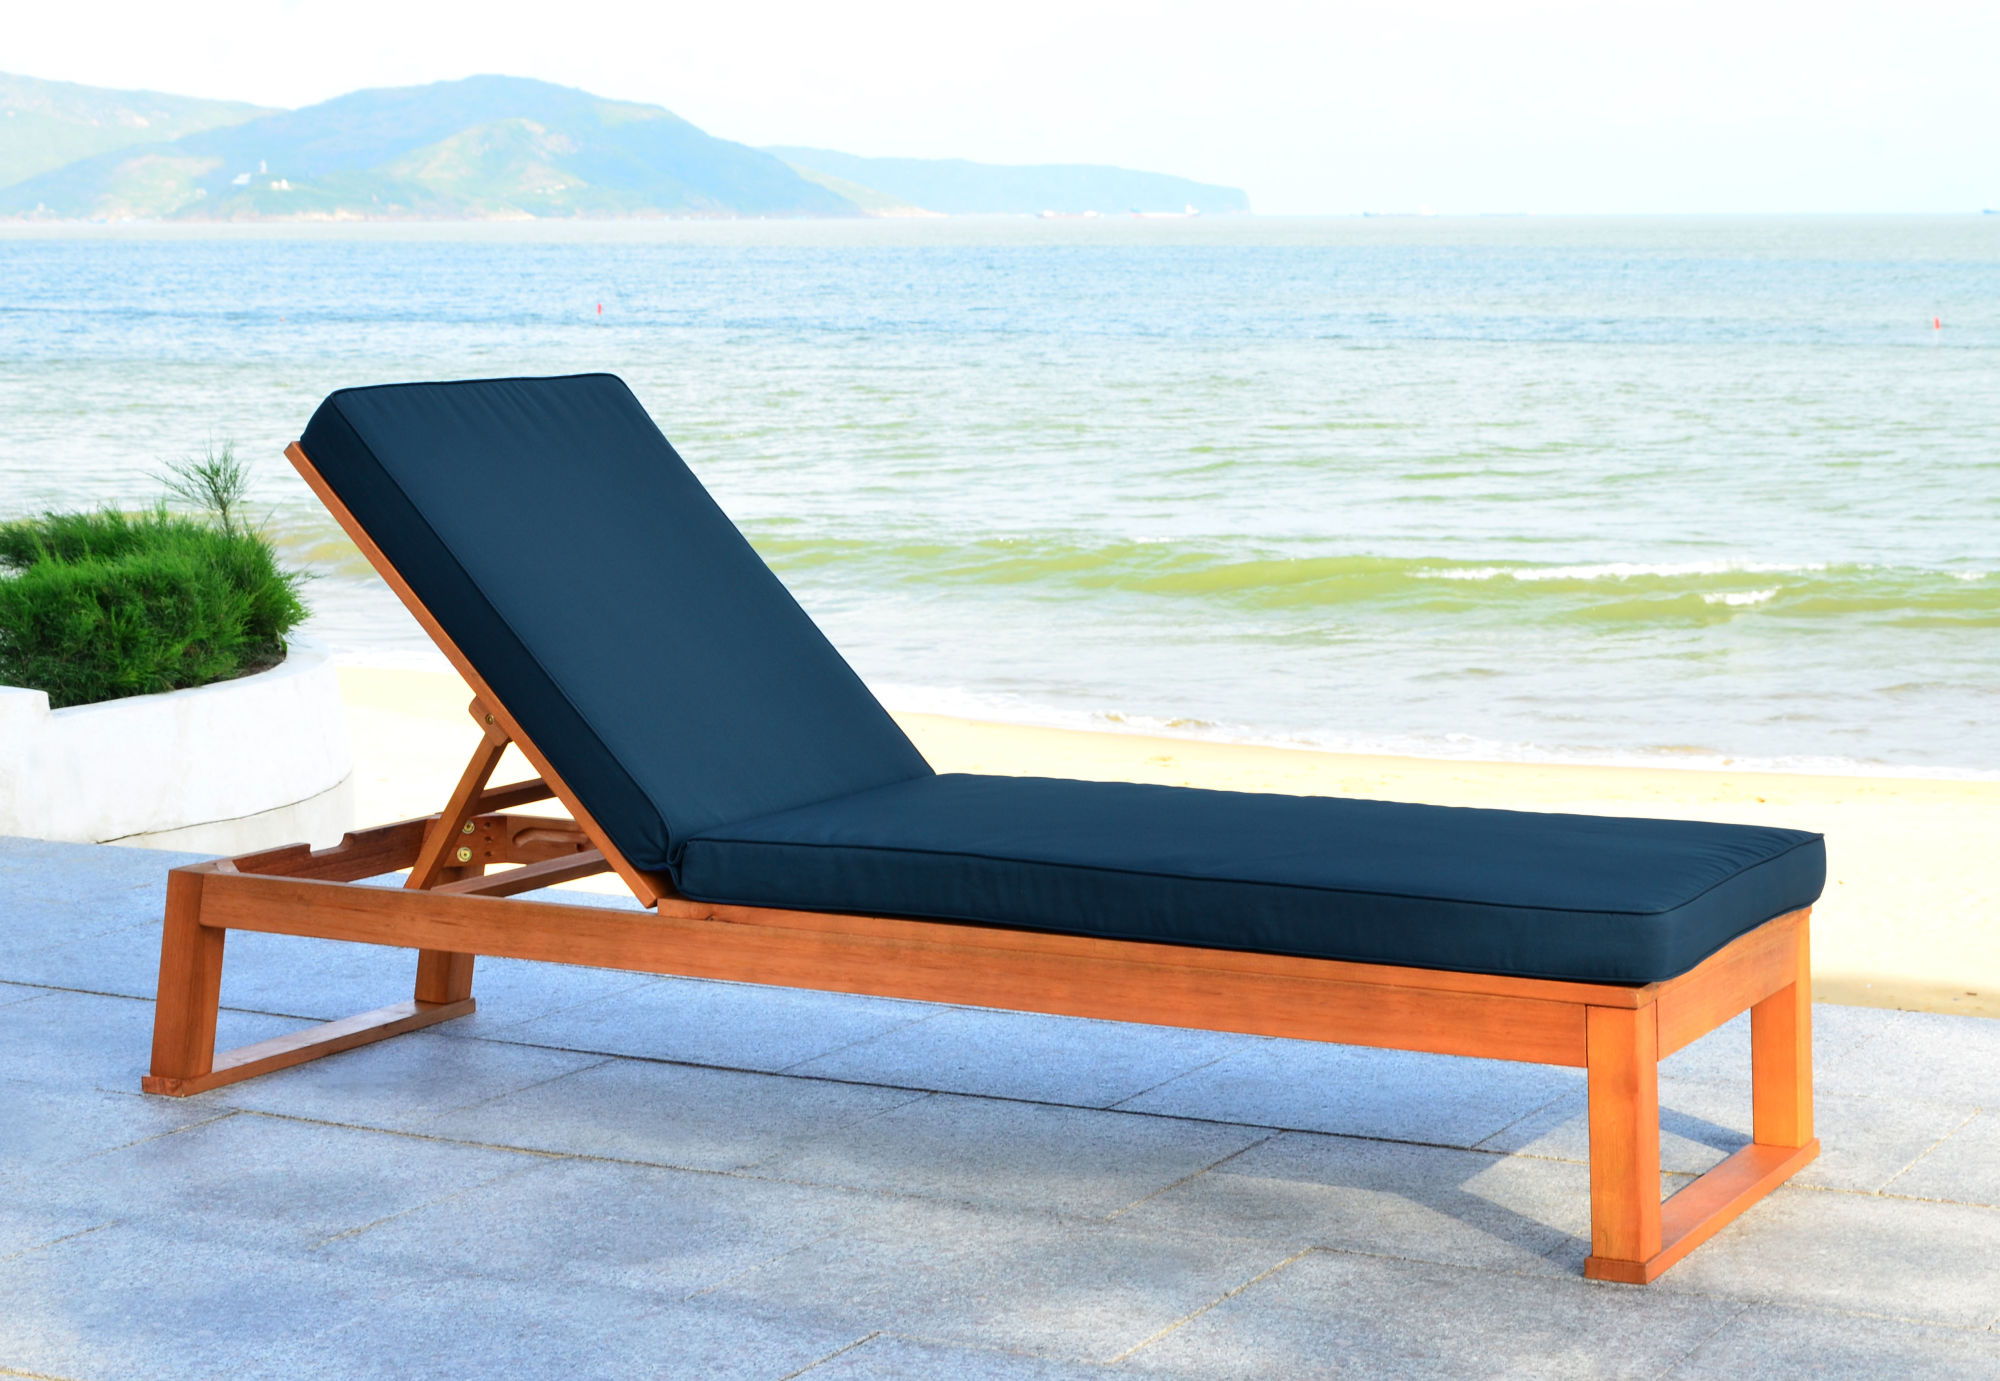 Solano Sunlounger on Safavieh Outdoor Living Solano Sunlounger id=44556